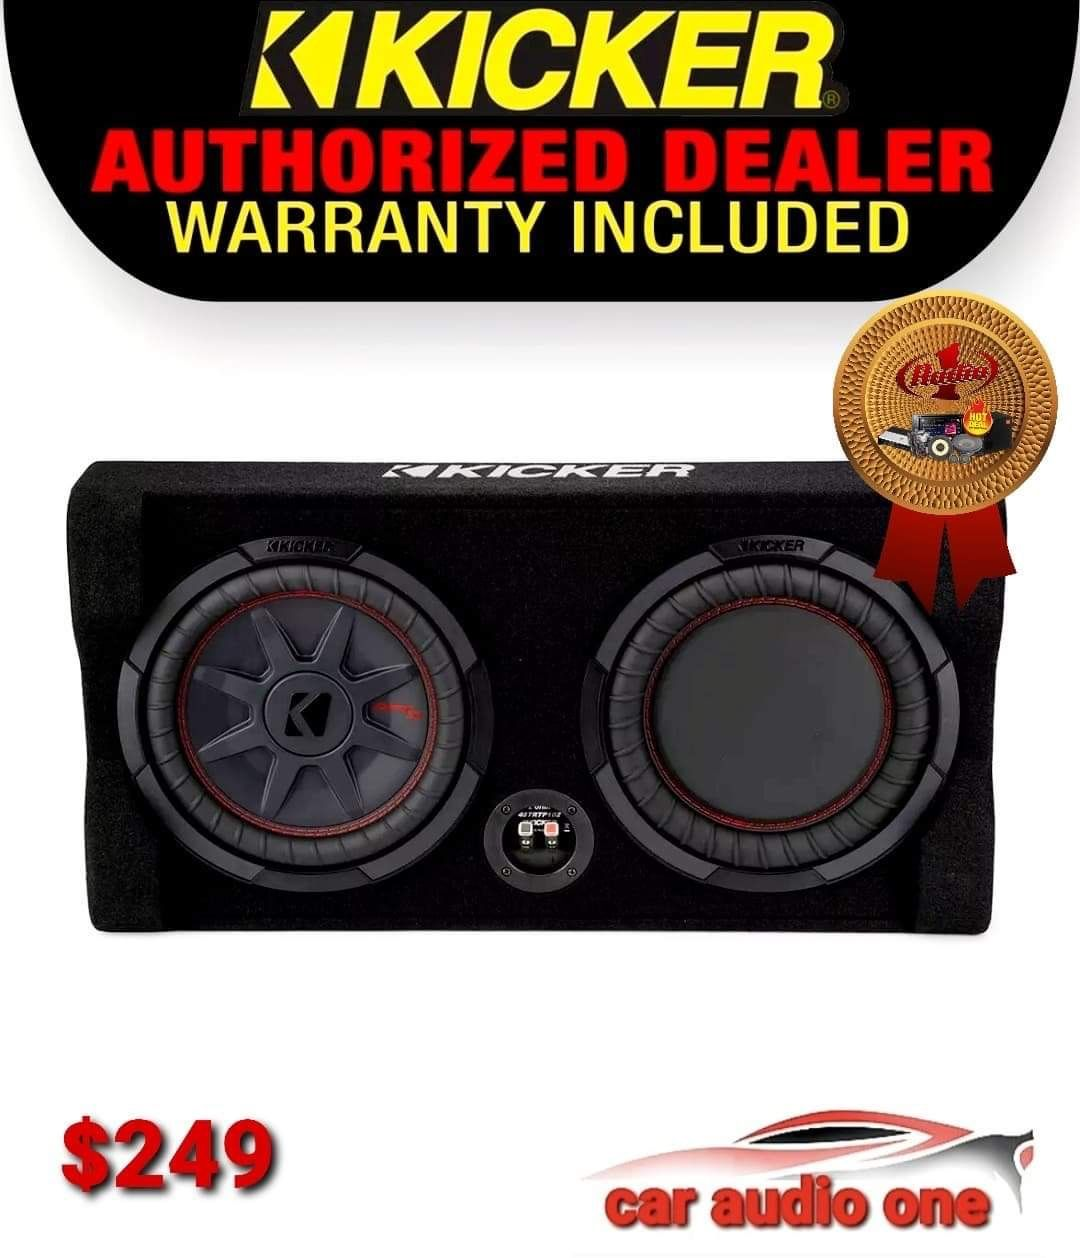 Kicker 12 Inch Subwoofer With Costume Box